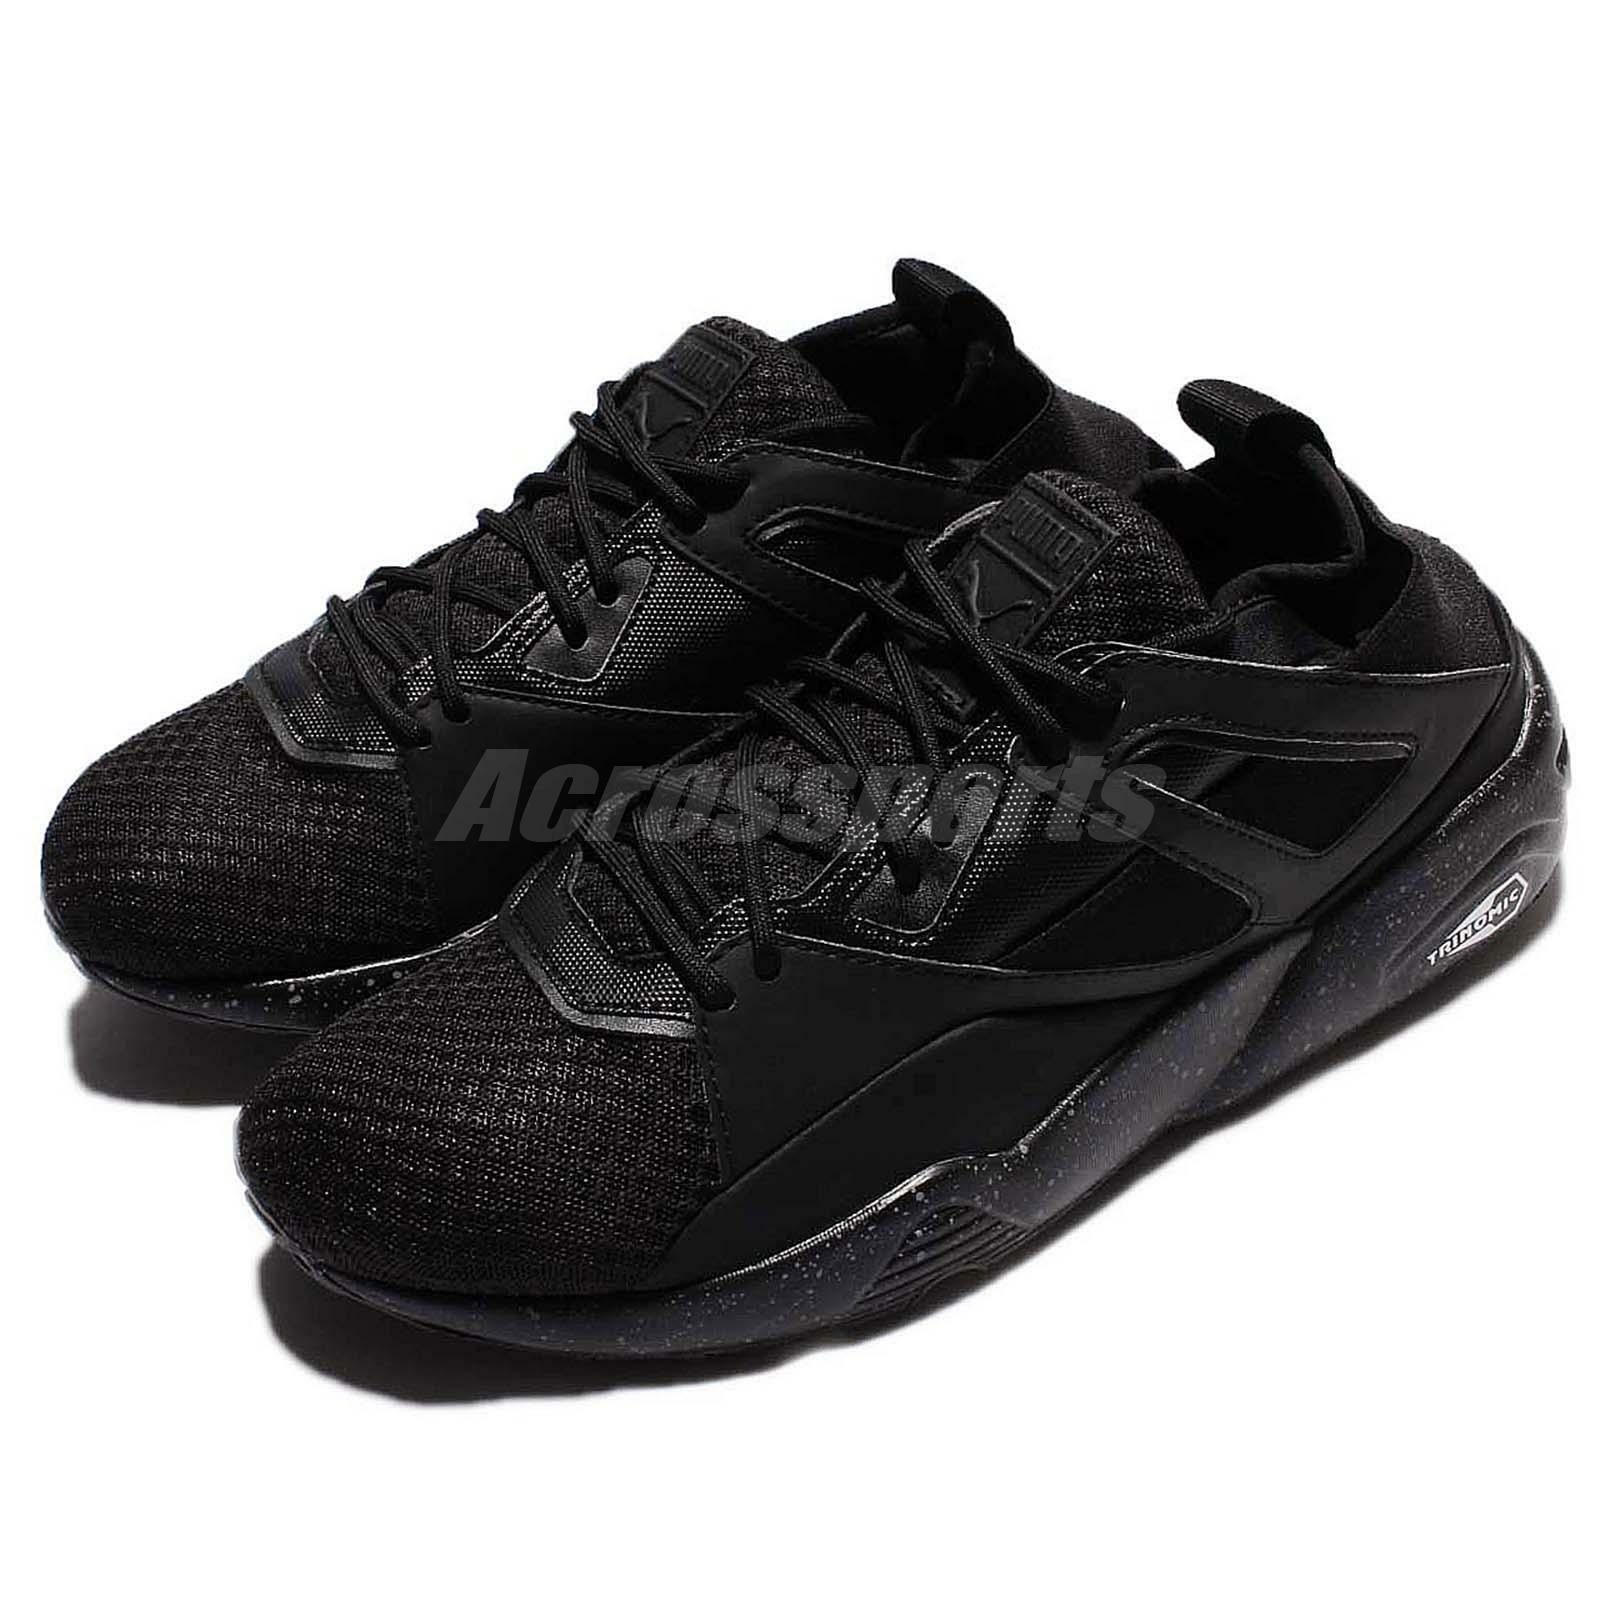 Puma B.O.G Glory Sock Blaze Of Glory B.O.G Negro Speckle Hombre Running Zapatos Sneakers 362520-01 1dfee0